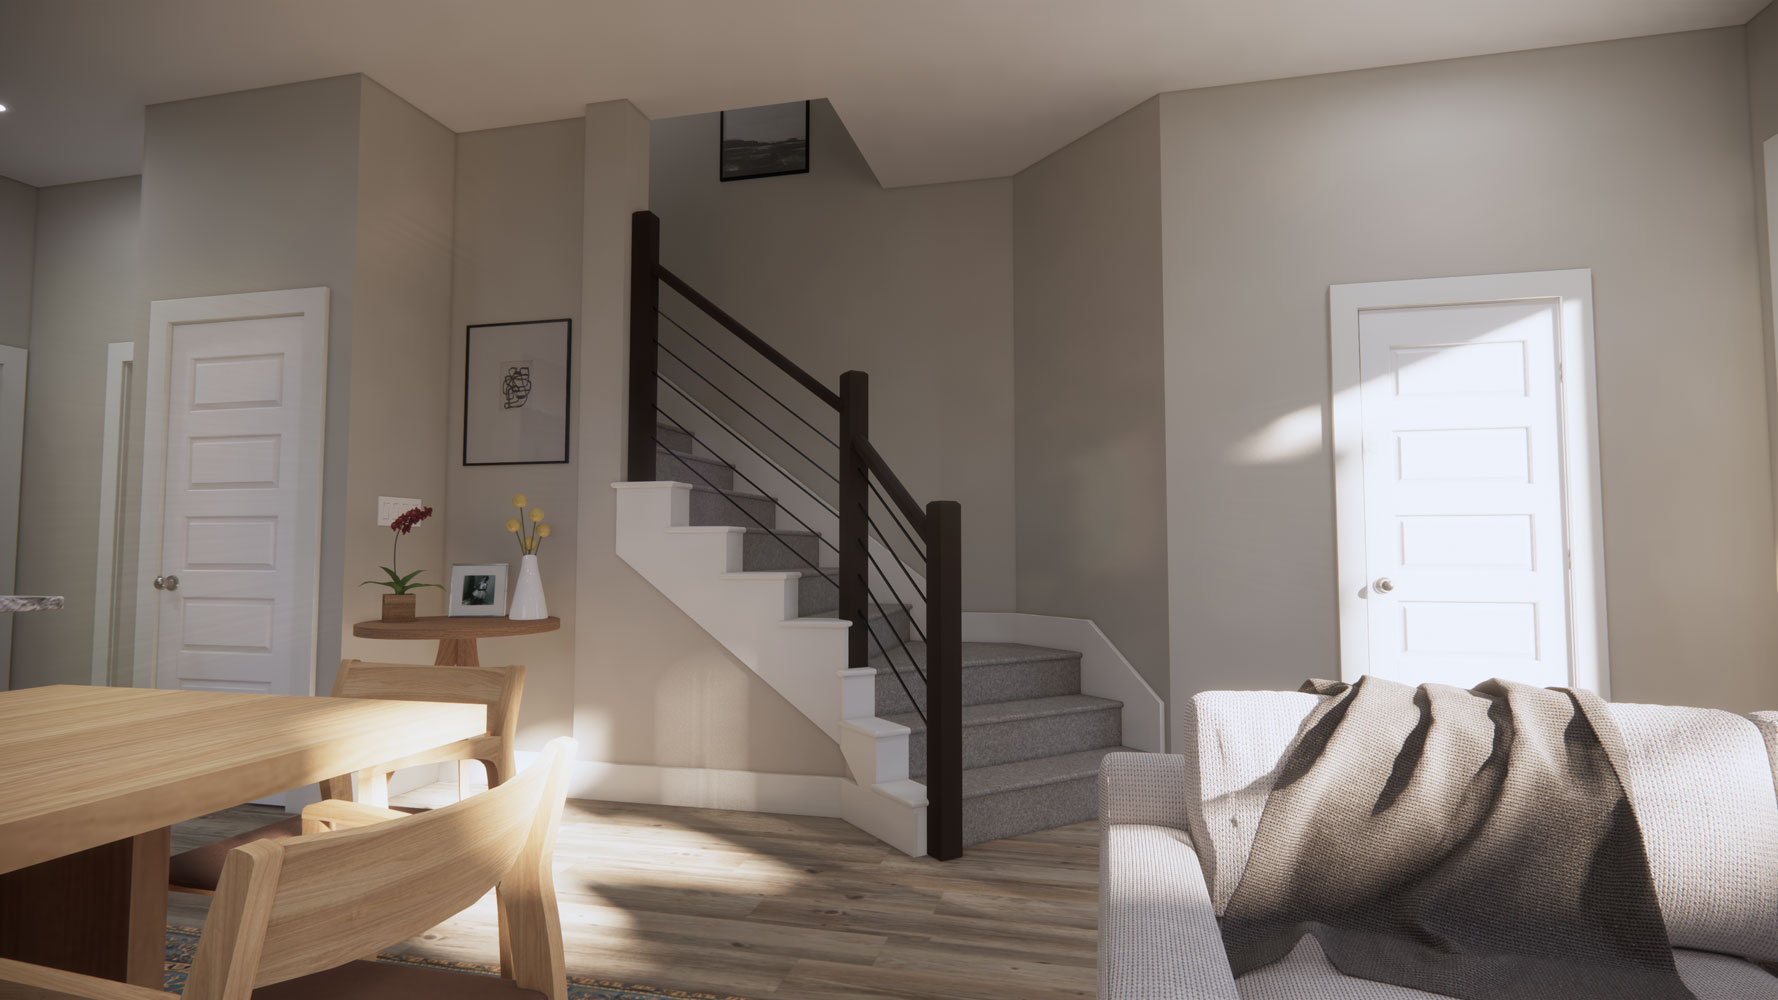 Apartments with Stairwells at Echelon at Reverchon Bluffs in Dallas, Texas